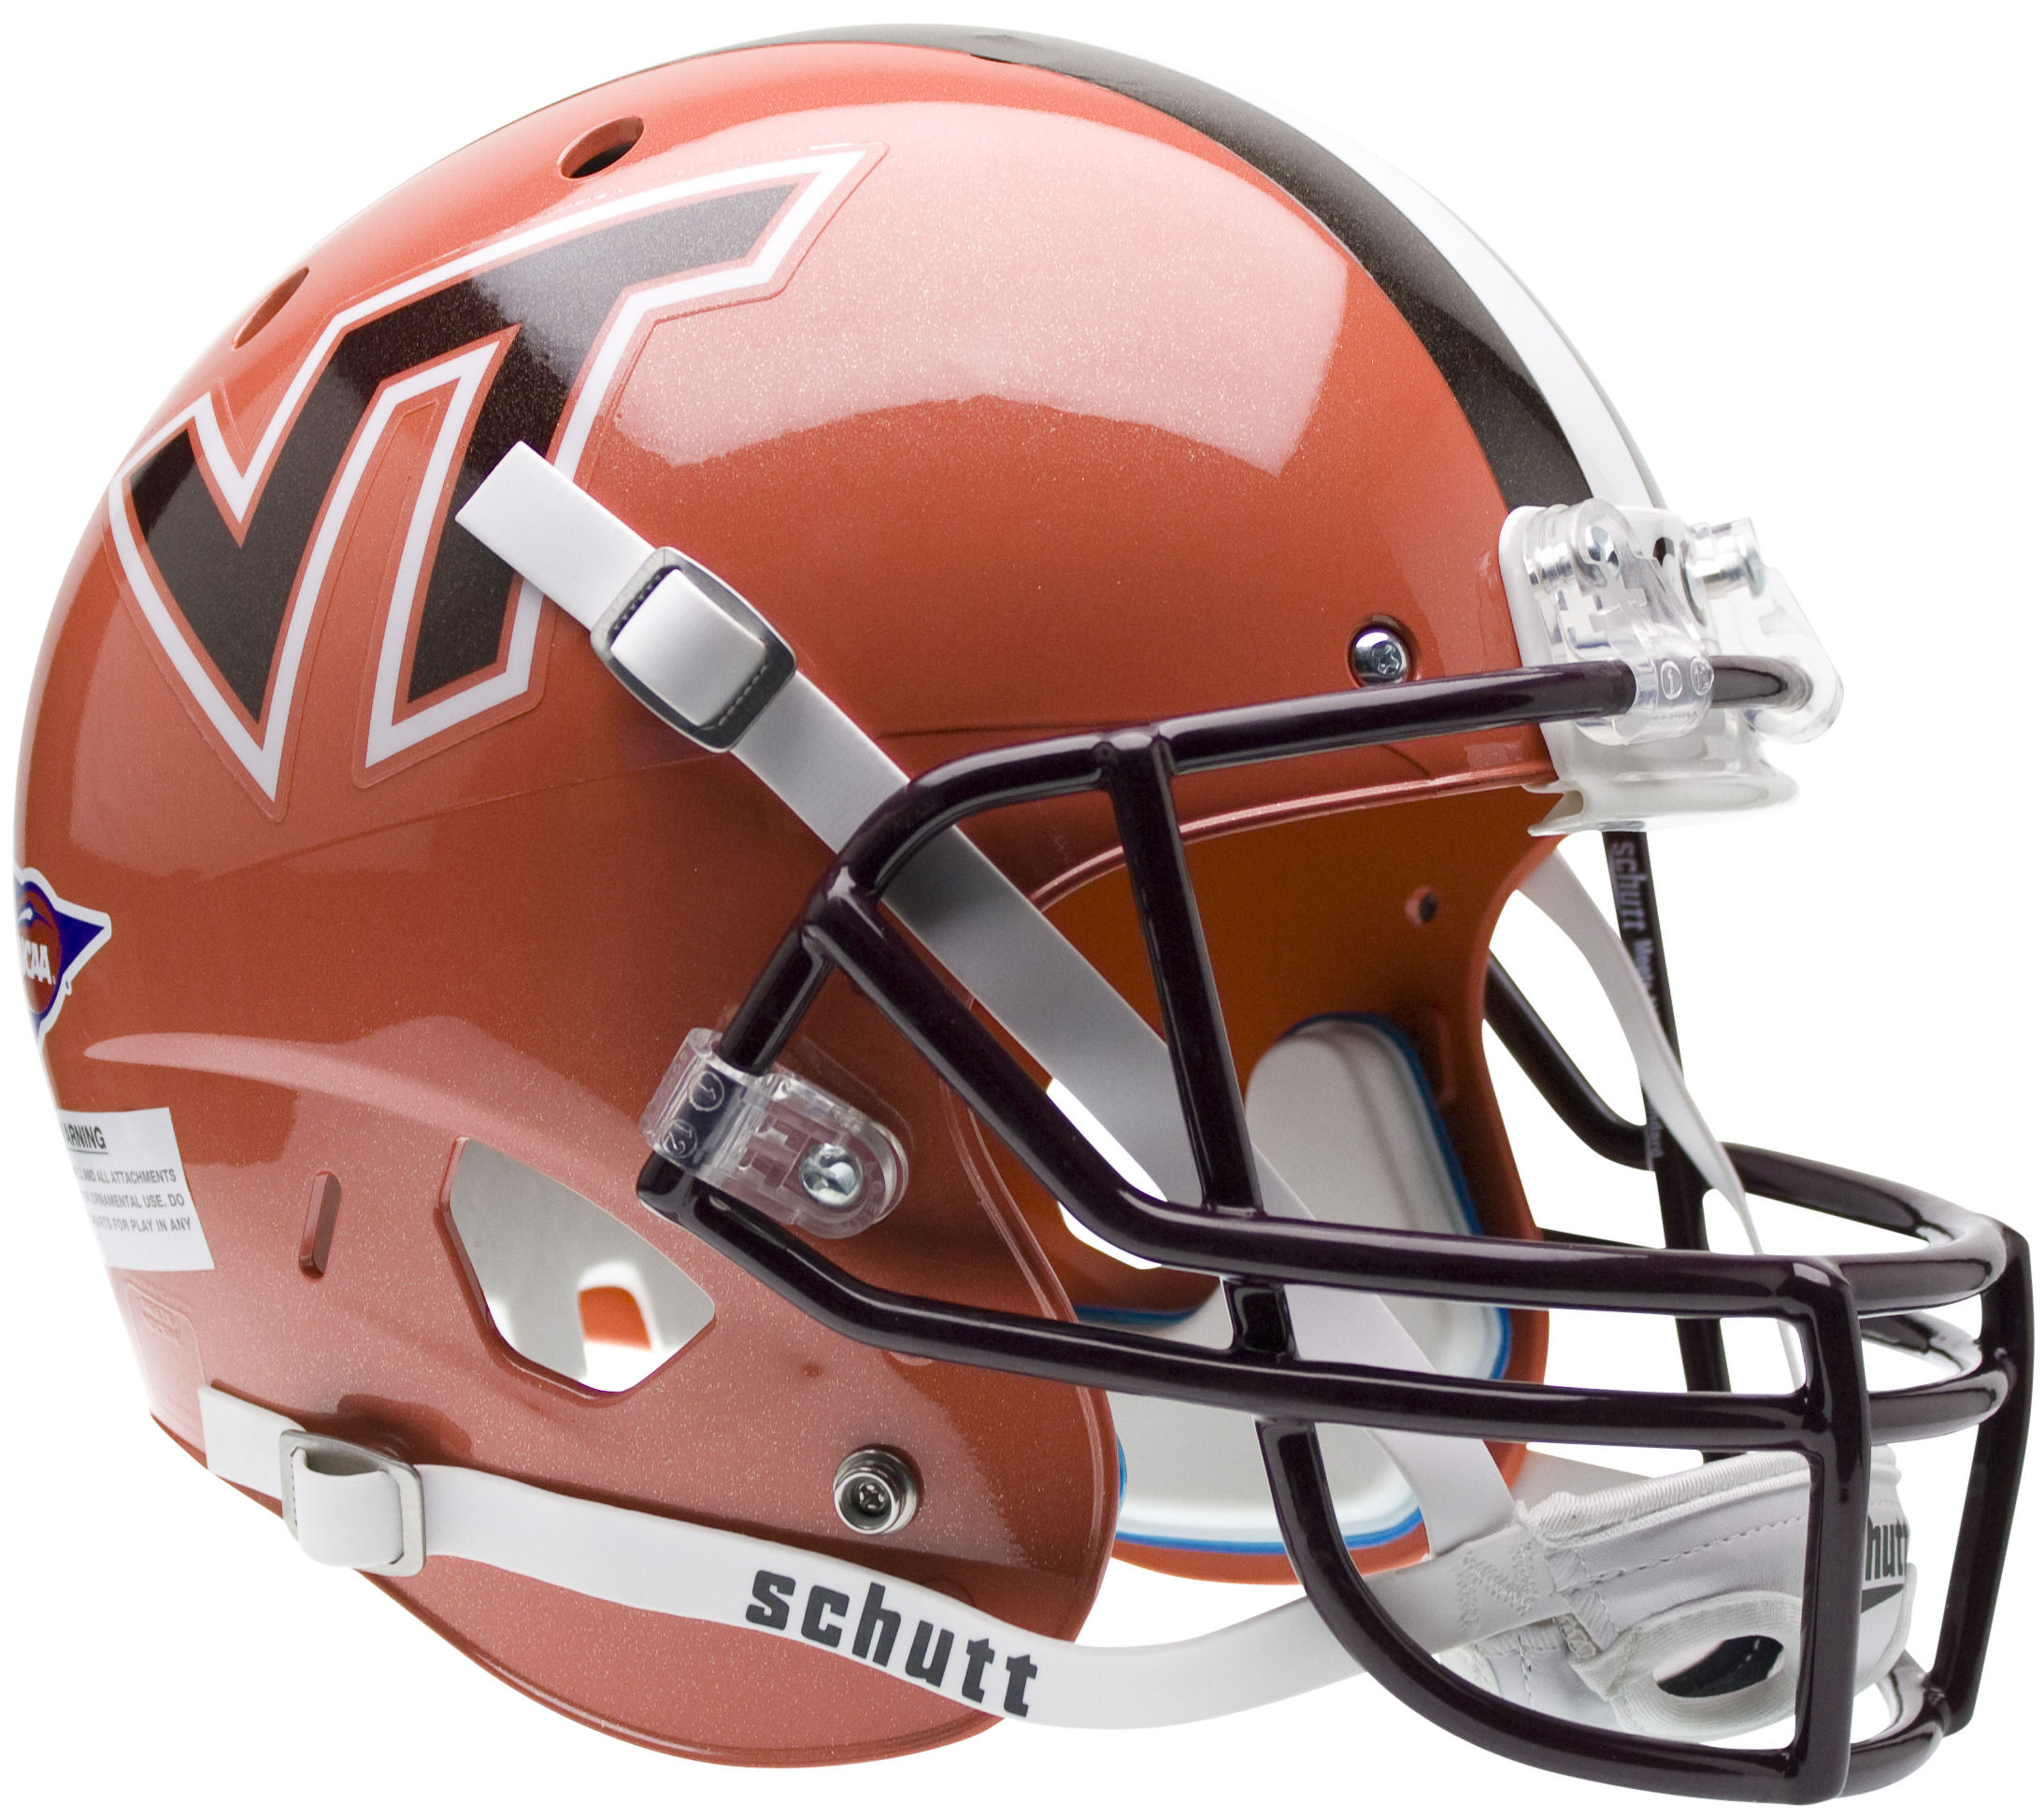 Virginia Tech Hokies Full XP Replica Football Helmet Schutt <B>Orange wi/ Stripe</B>